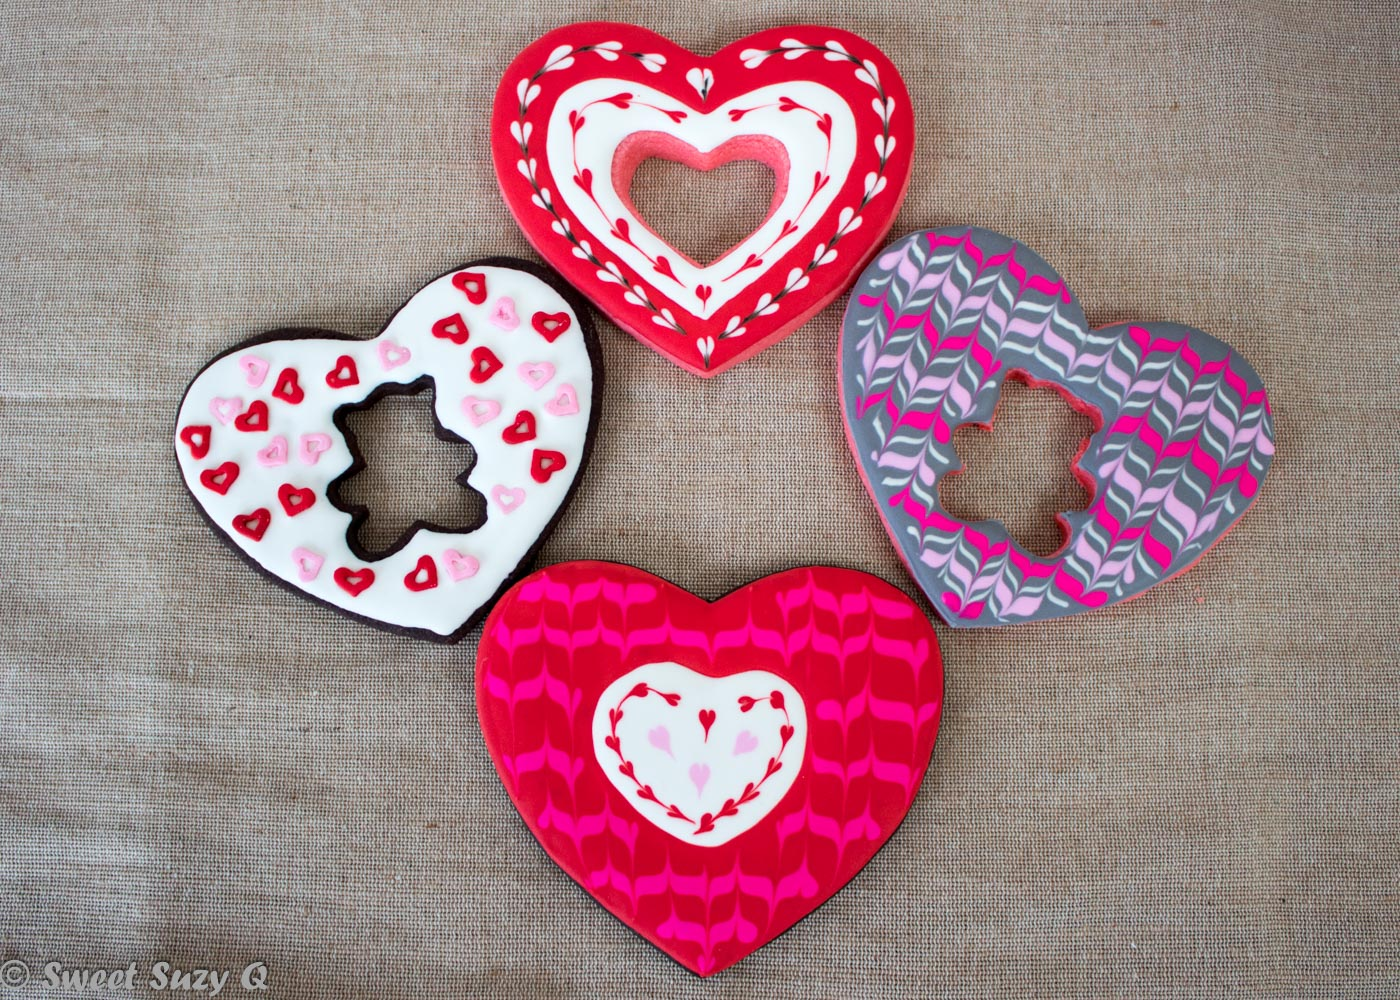 Large Valentine's hearts with cutouts